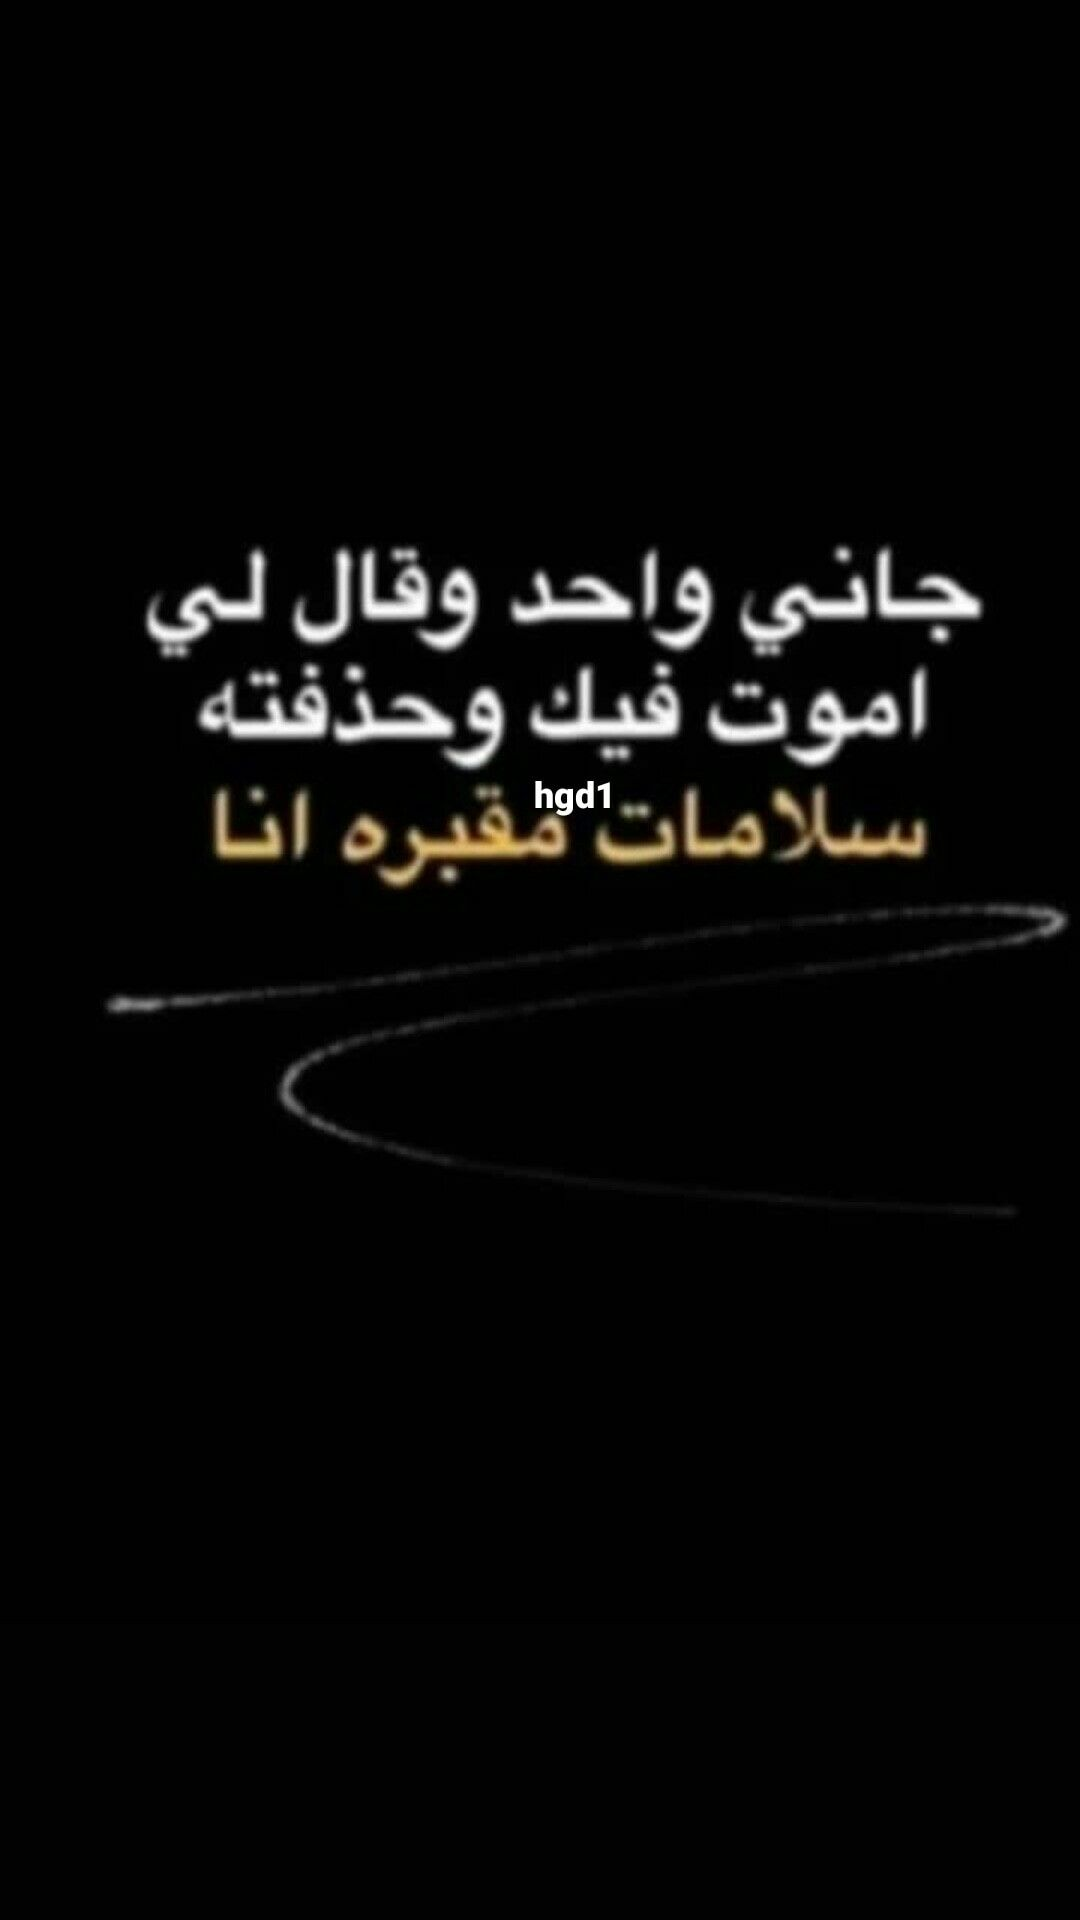 Pin By Iyana D Reyna On ضحك و وناسه In 2020 Funny Arabic Quotes Words Quotes Cute Quotes